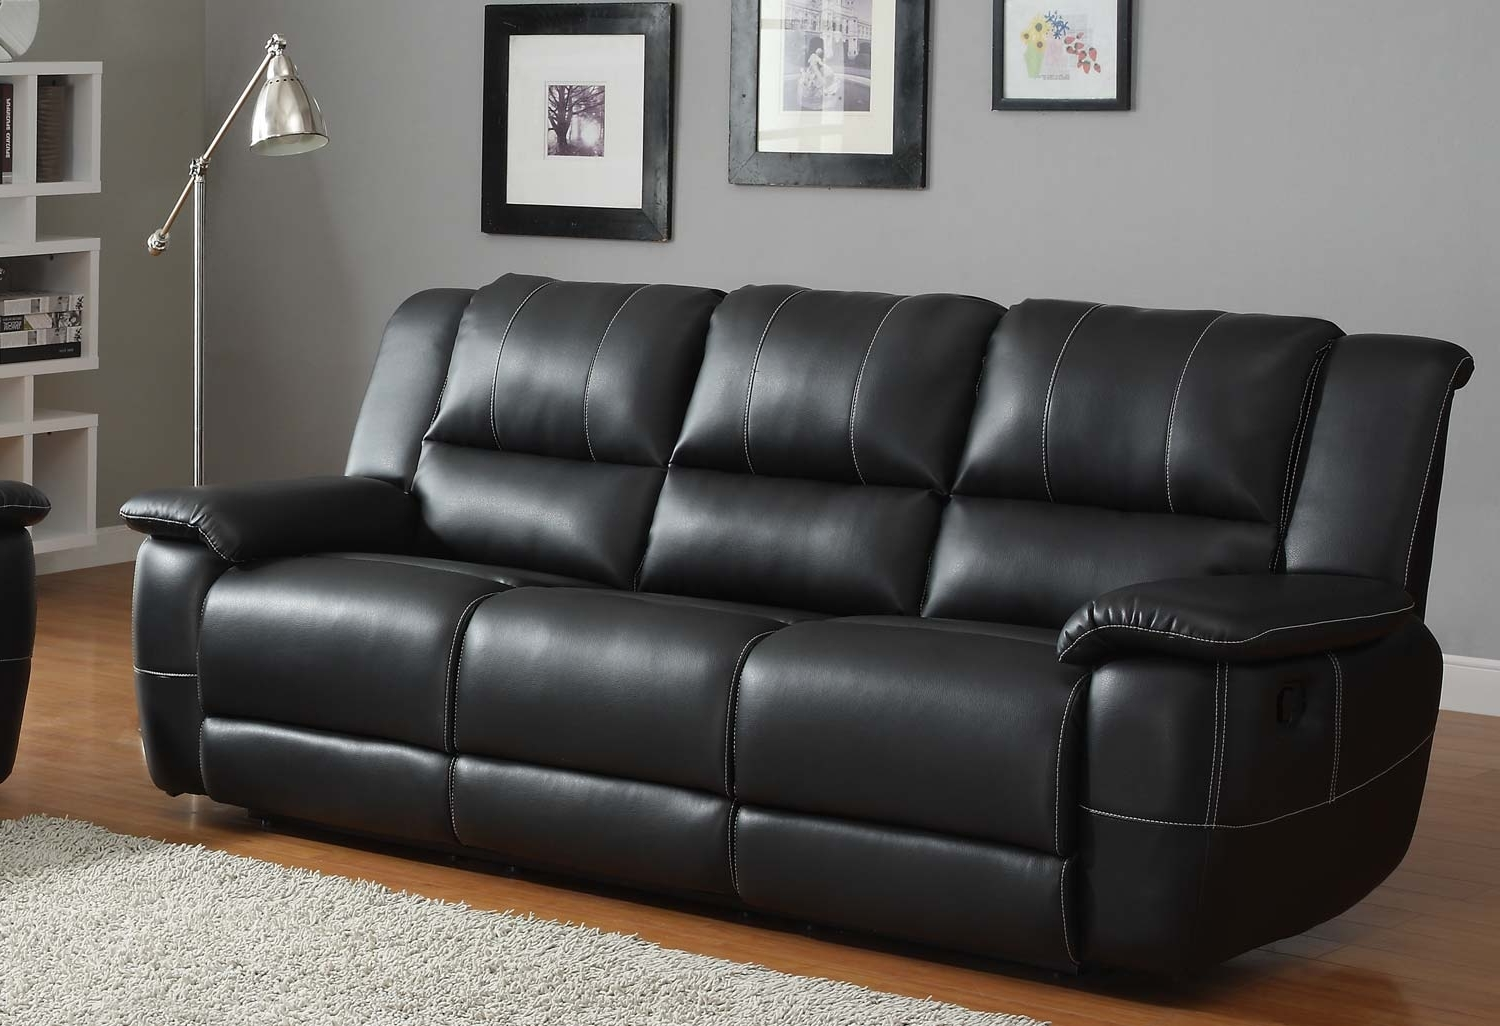 Black Leather Sofa White Leather Contemporary Sectional Sofa With Regard To Current Cheap Black Sofas (View 12 of 20)